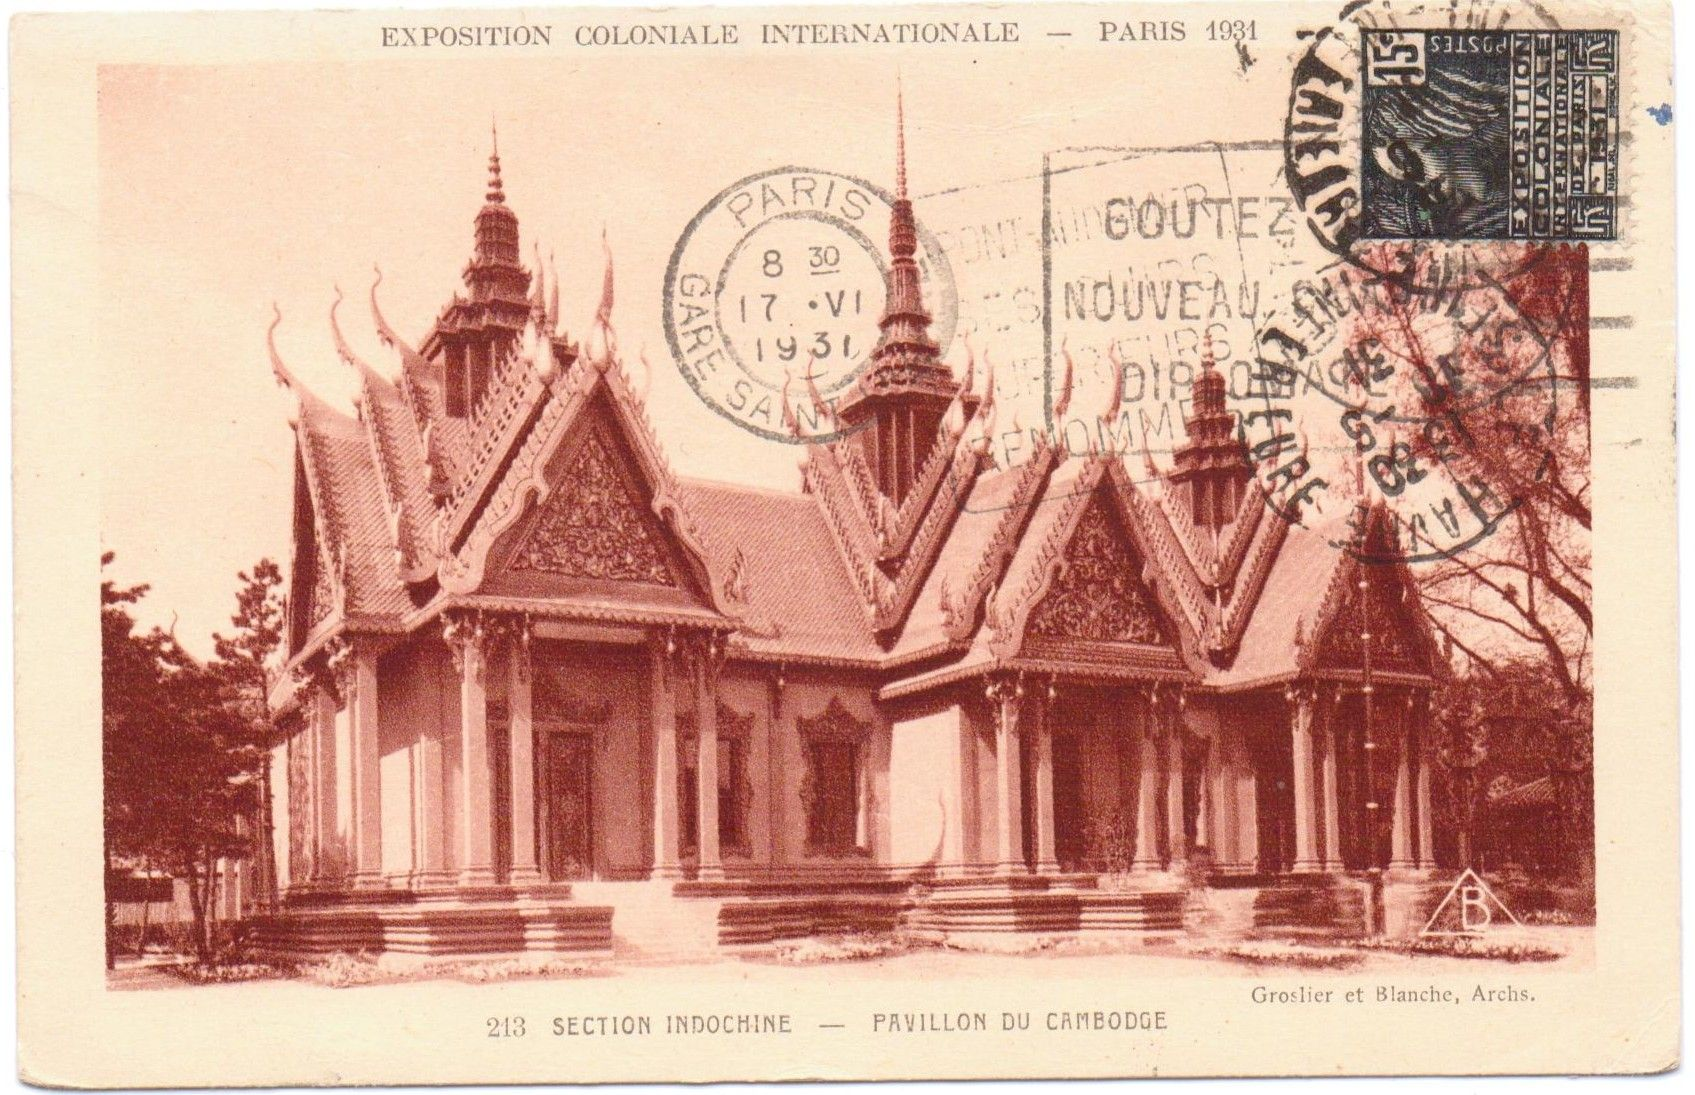 The Pavillon du Cambodge was a reproduction of typical Cambodian style buildings for the 1931 colonial exhibition in Paris.